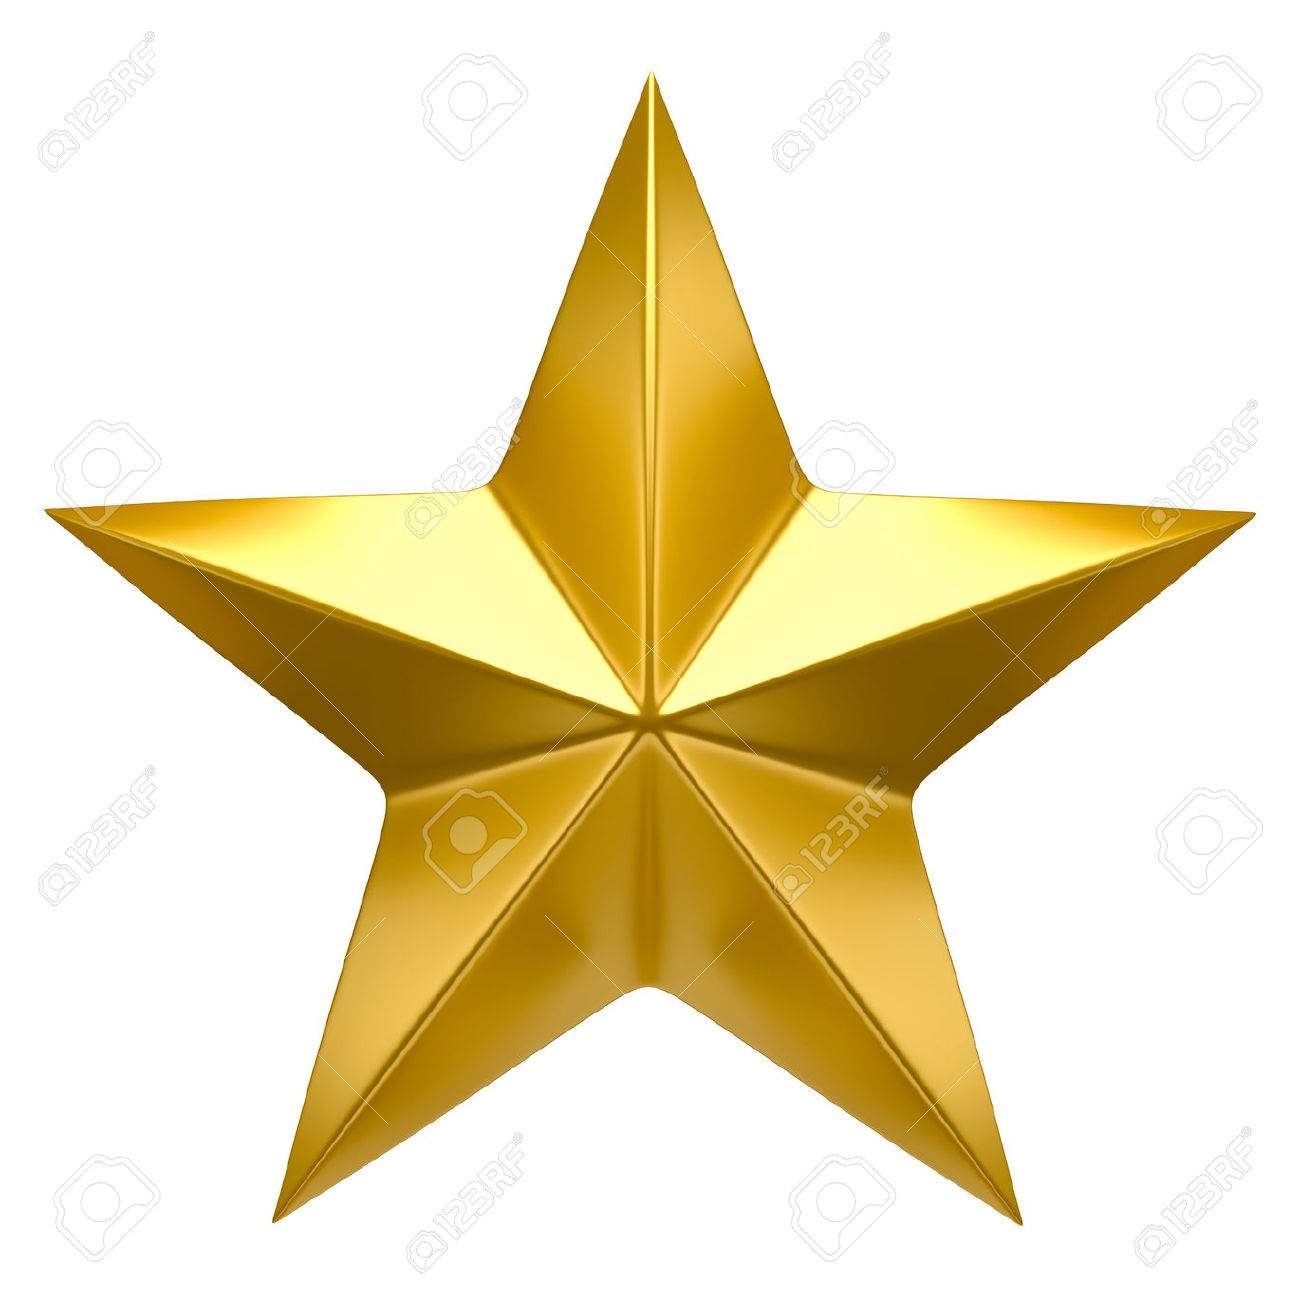 Image result for golden star